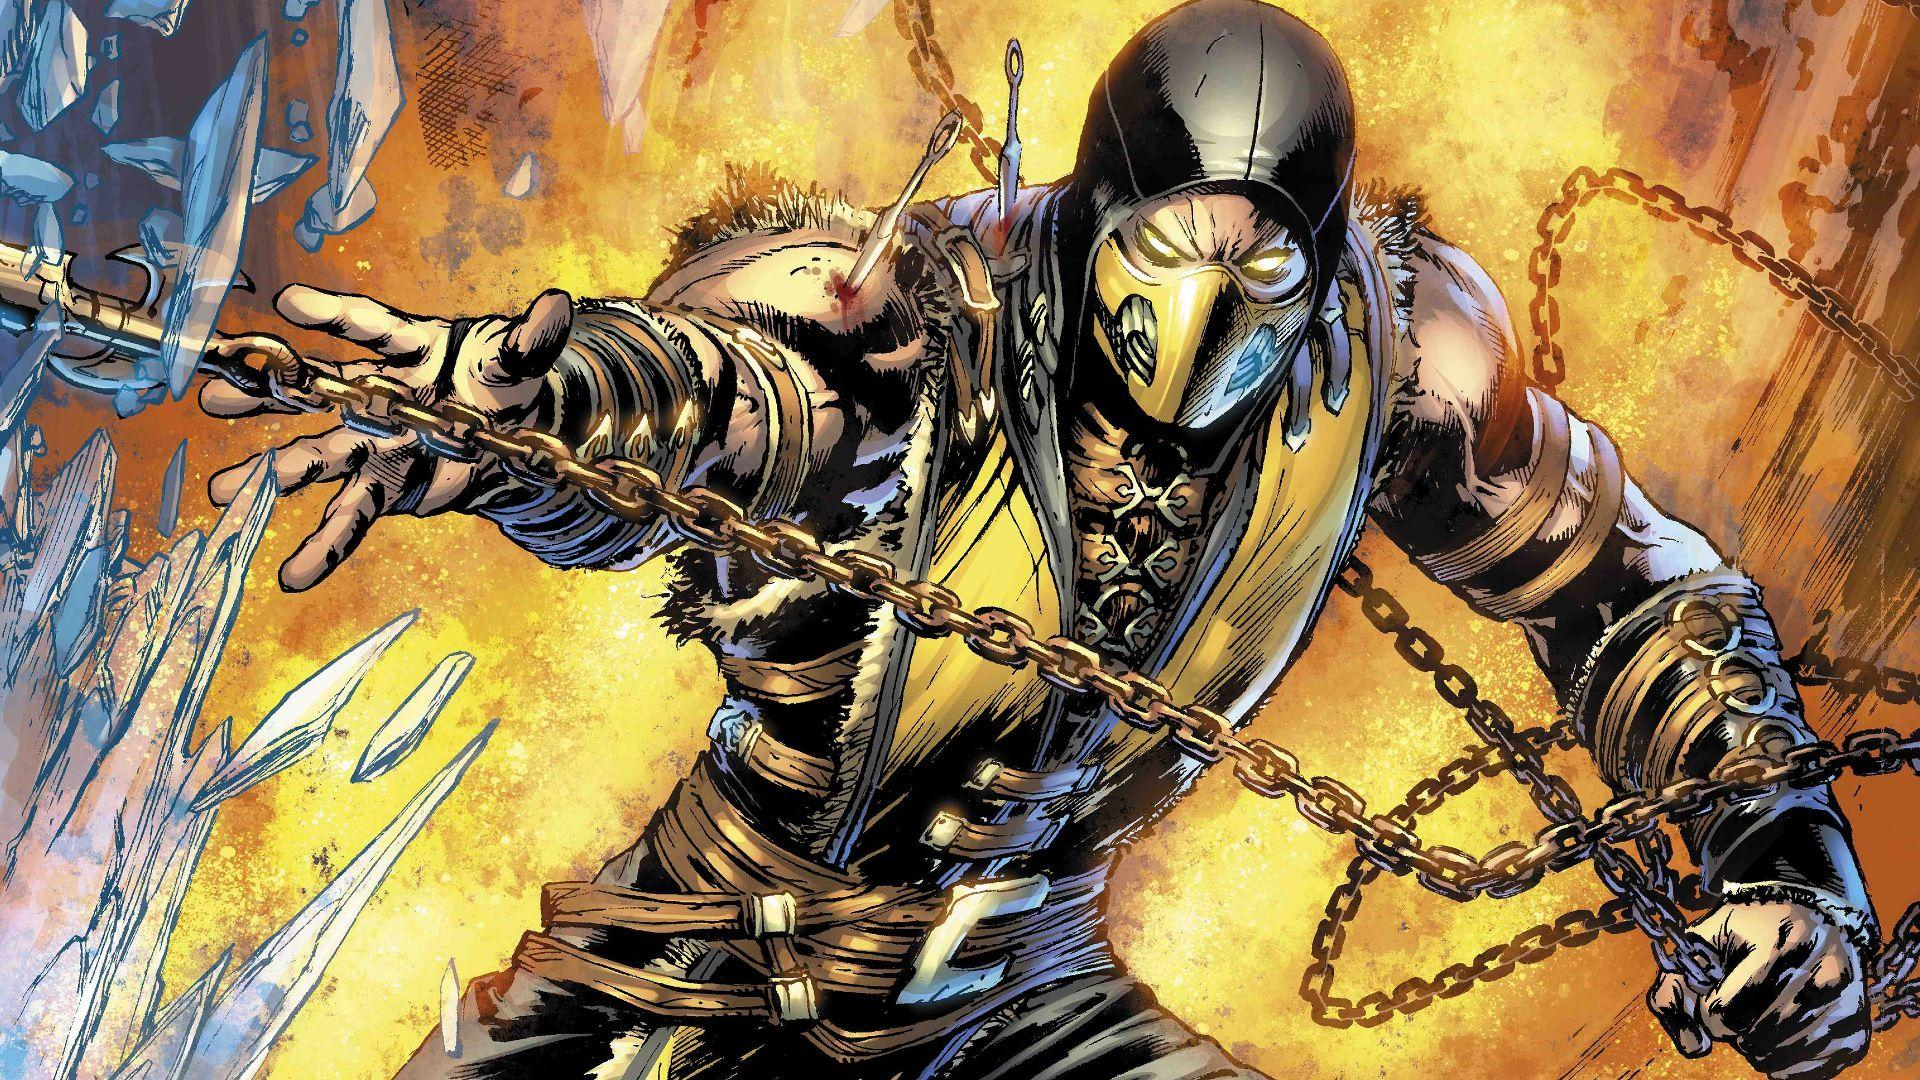 Scorpion mortal kombat pictures Gallery